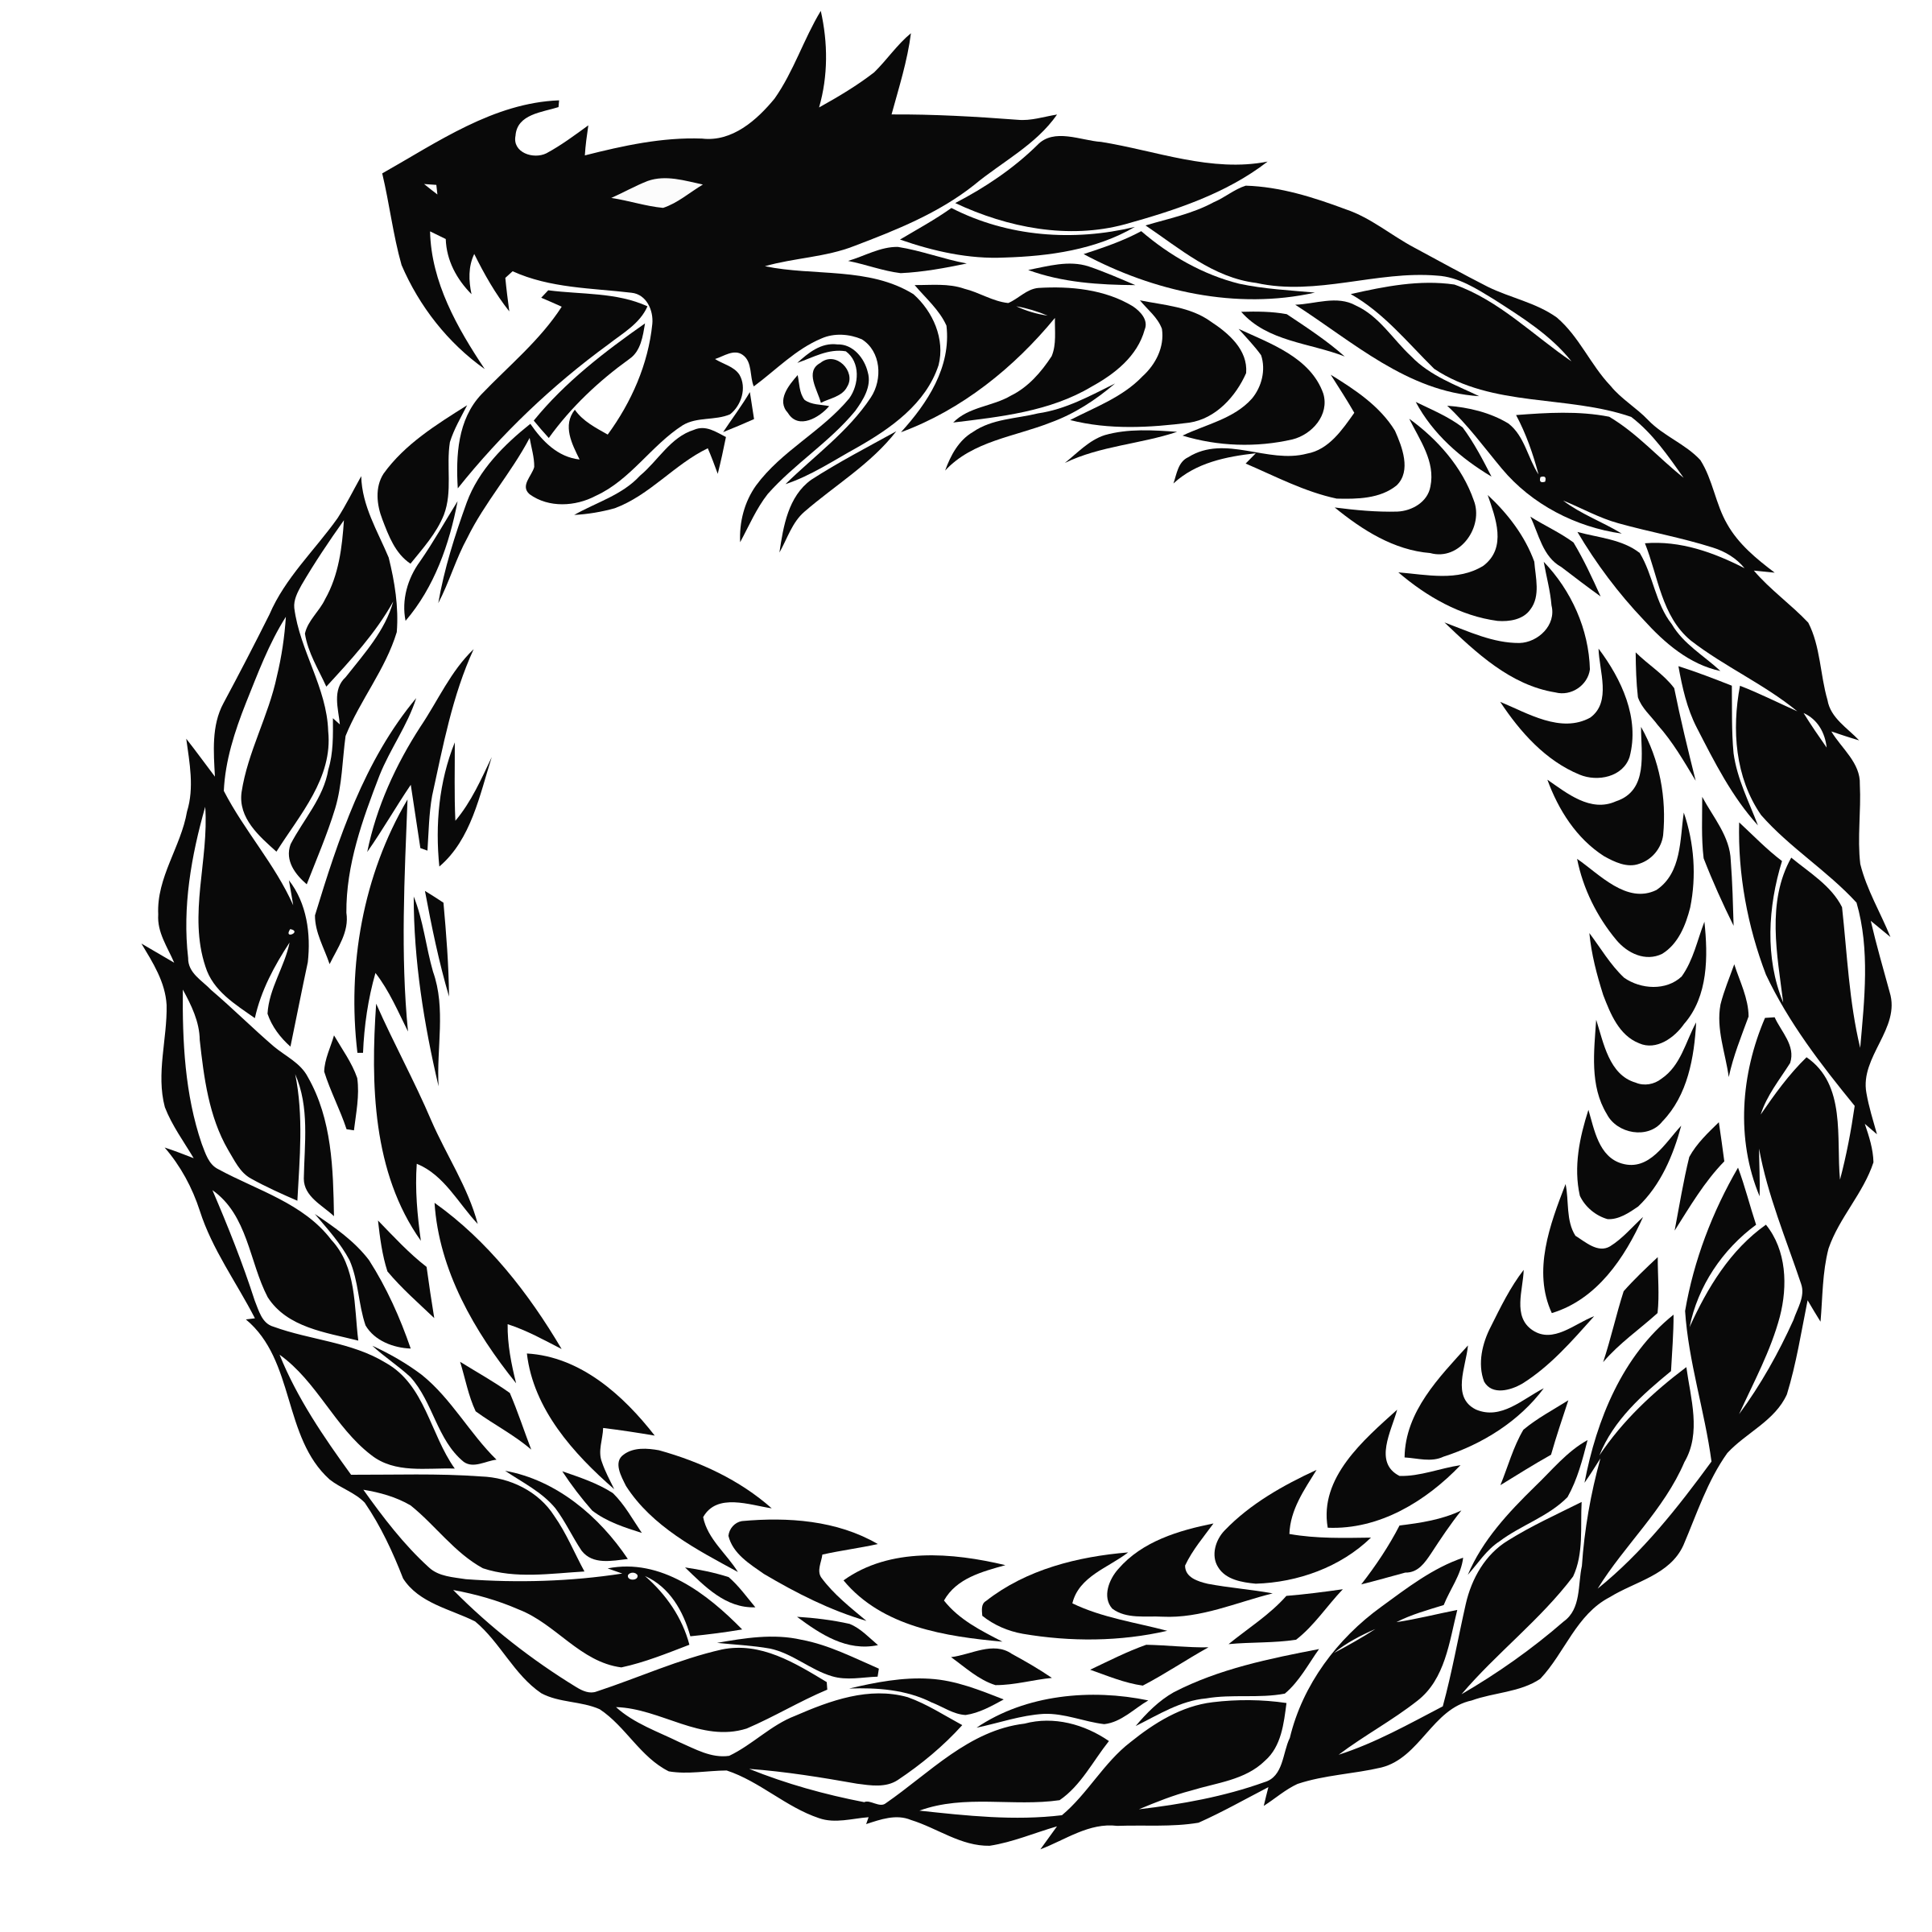 Snake infinity png. And the patterns of